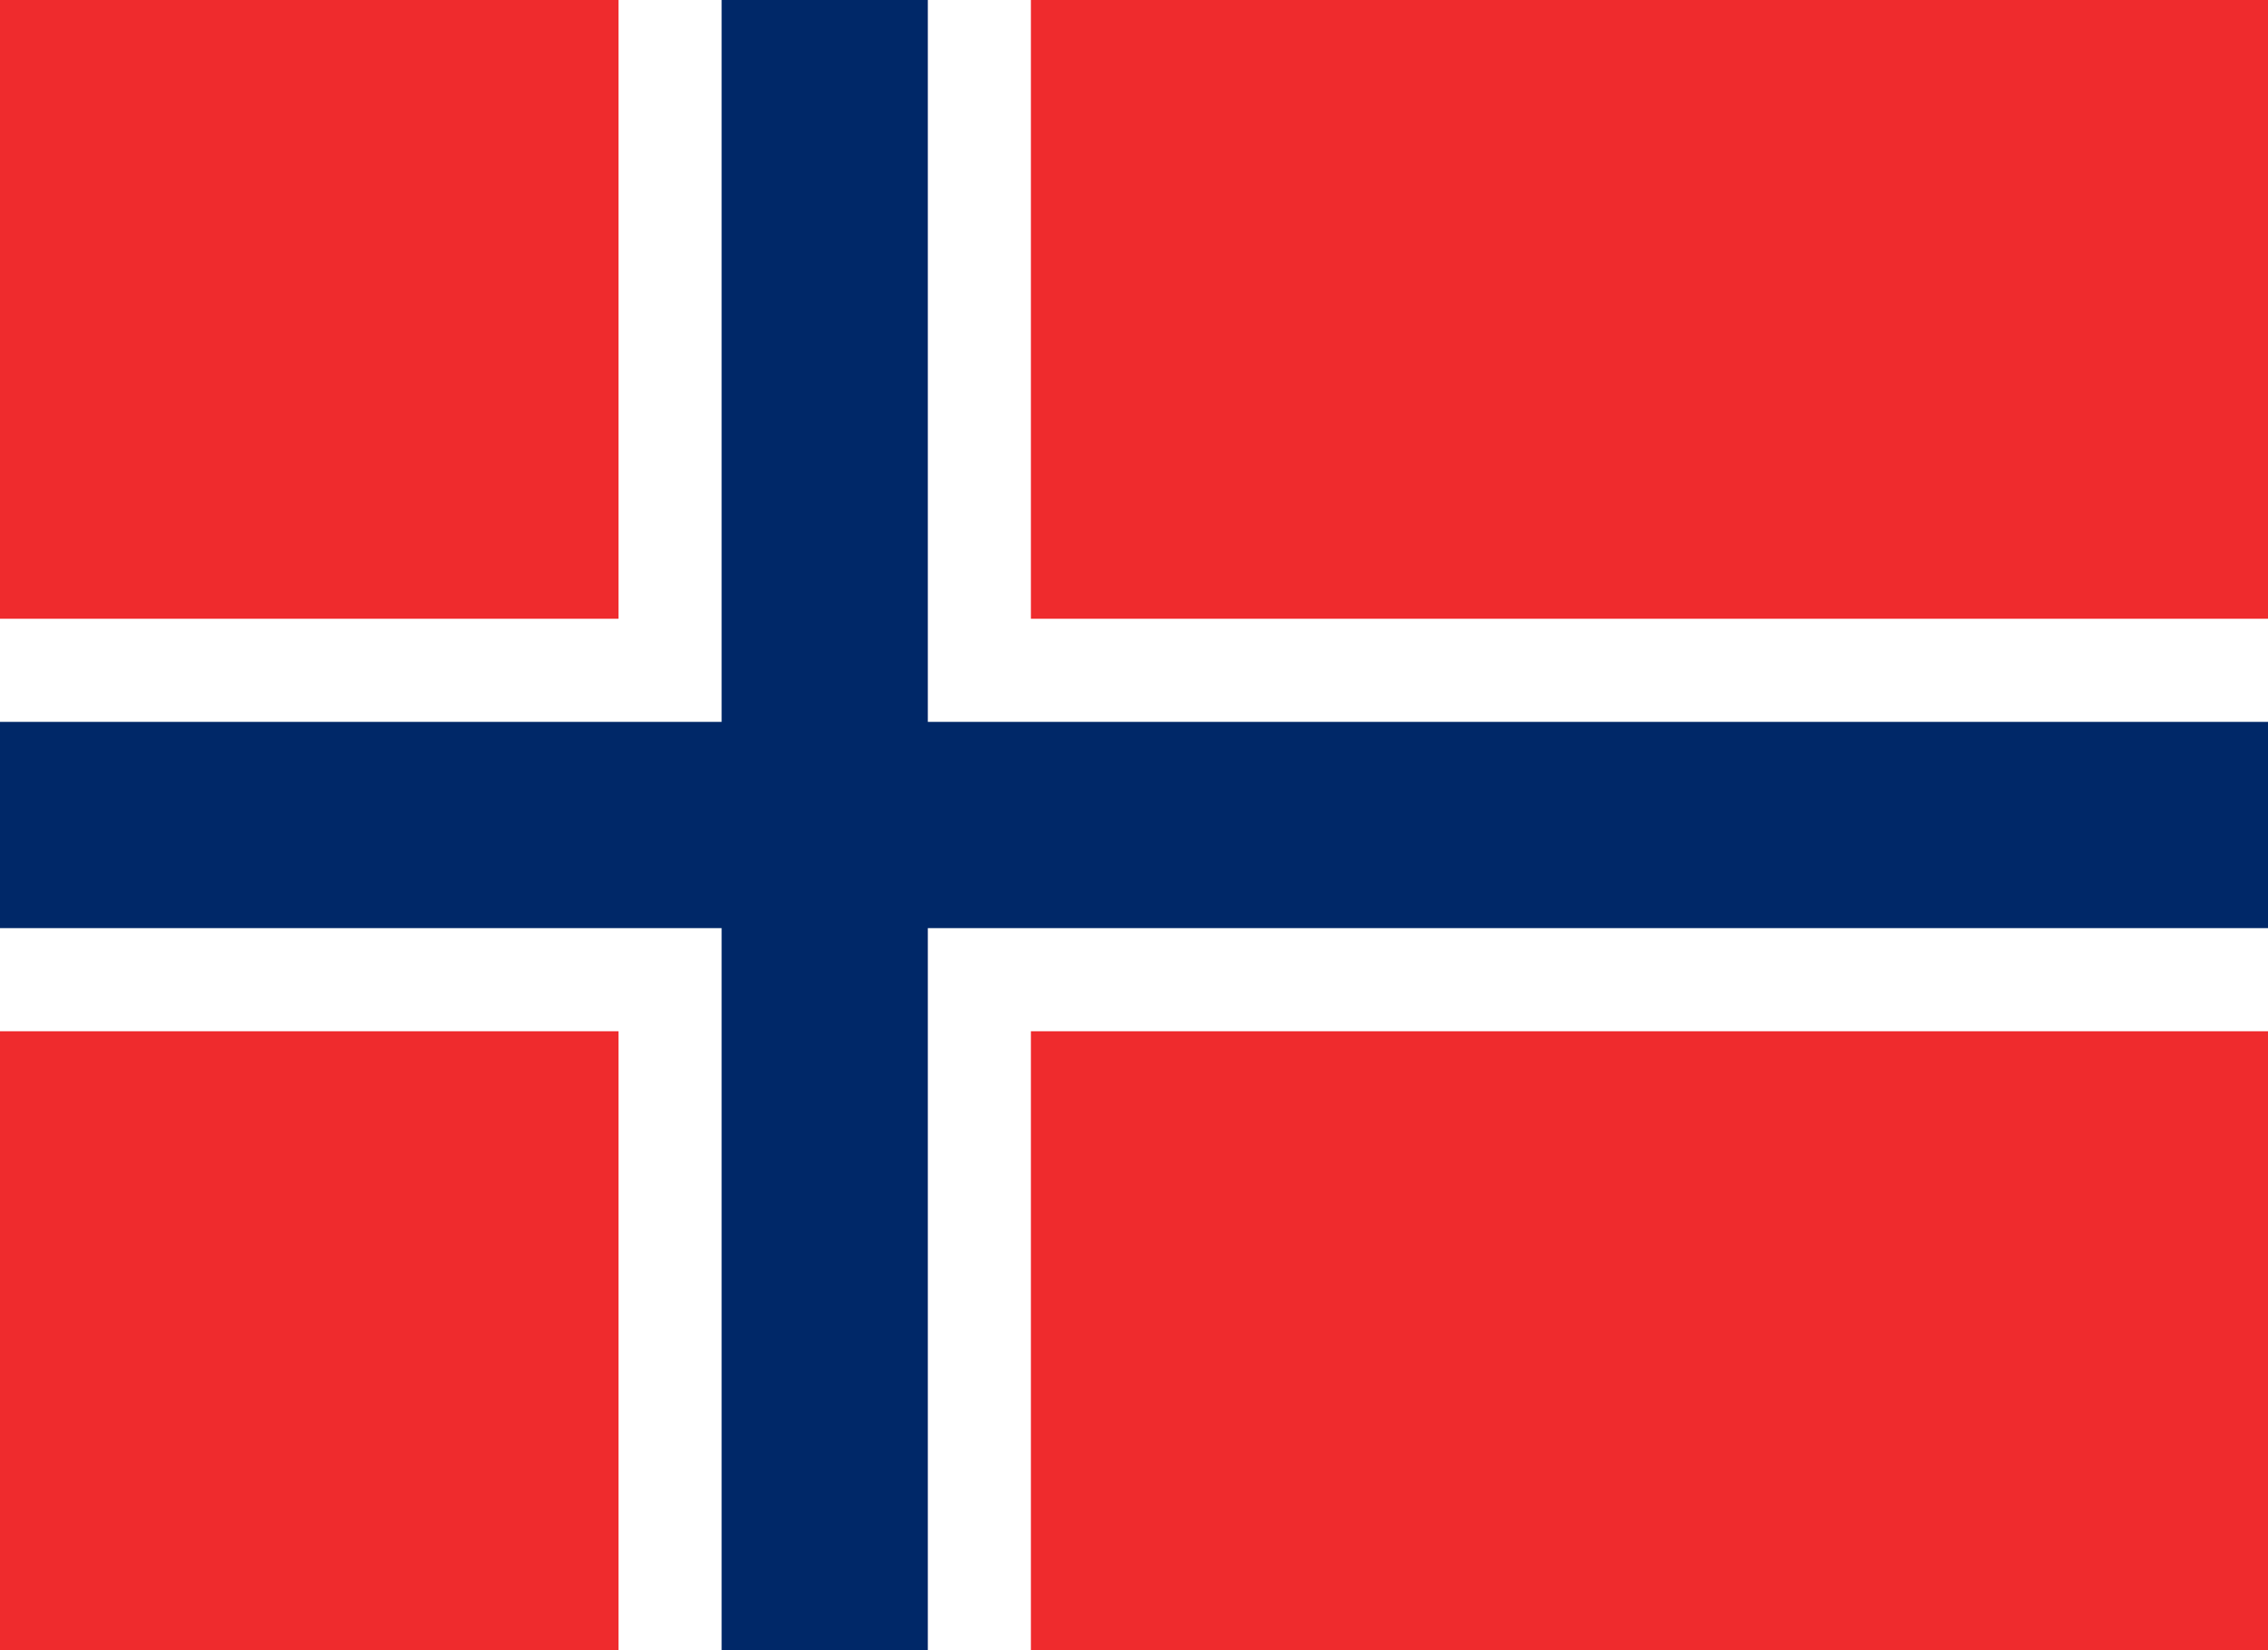 Norwegen, Land, Emblem, Logo, Symbol - Wallpaper HD - Prof.-falken.com